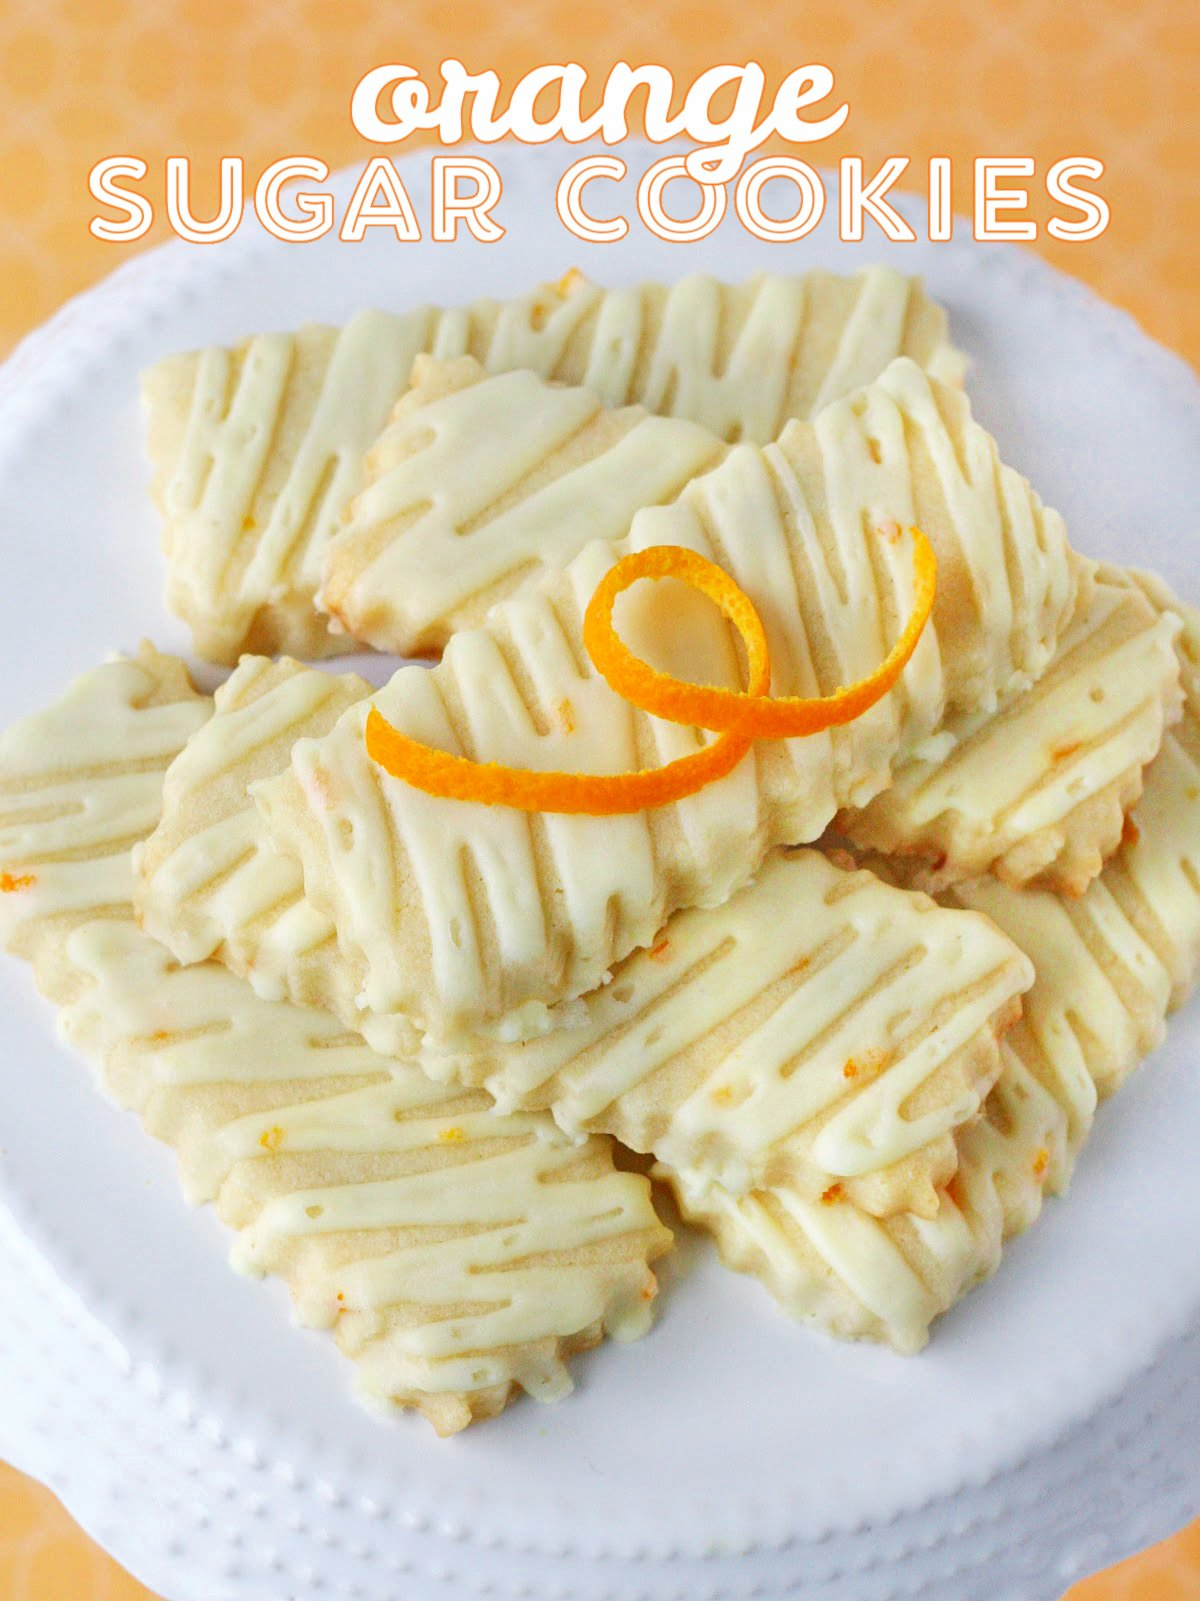 orange sugar cookies on white cake stand with title overlay at top of image.